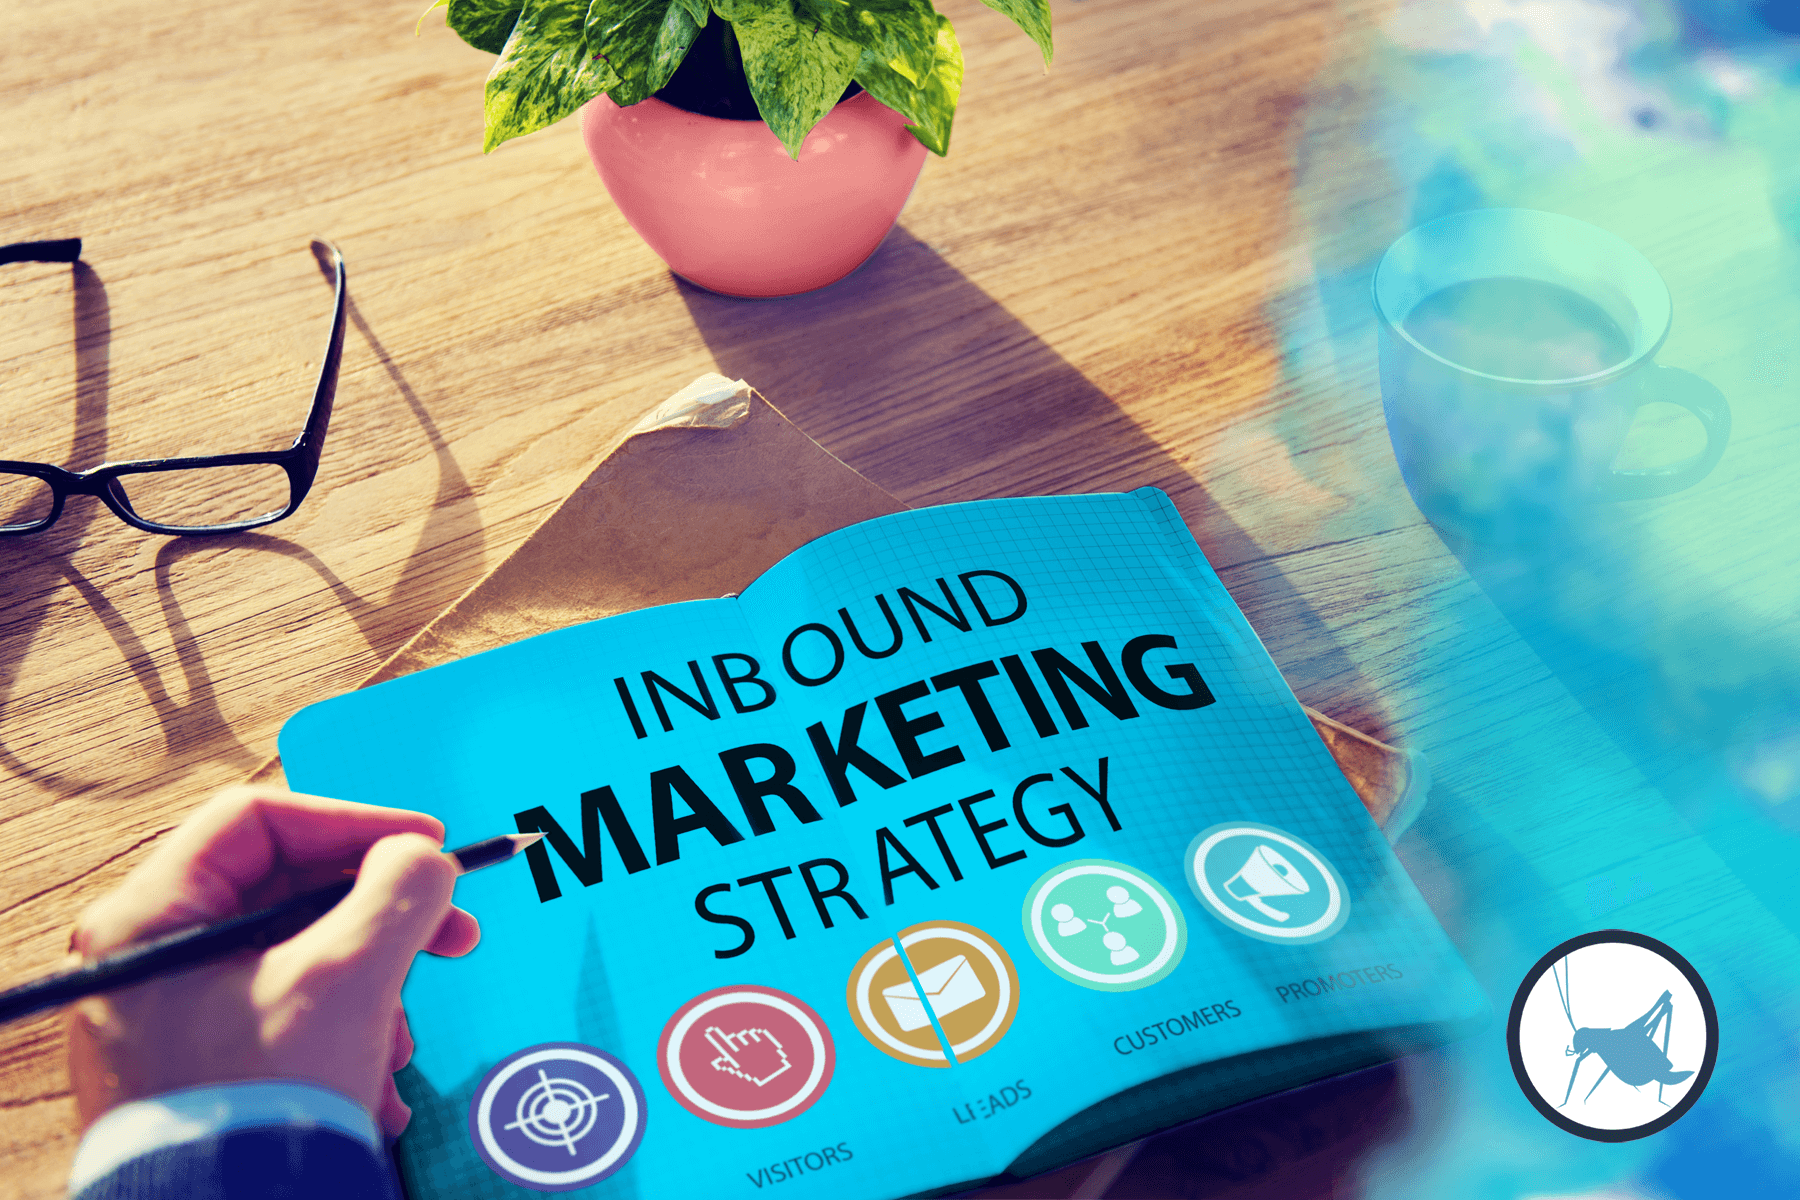 9 Reasons Your Business Should Make the Switch to Inbound Marketing